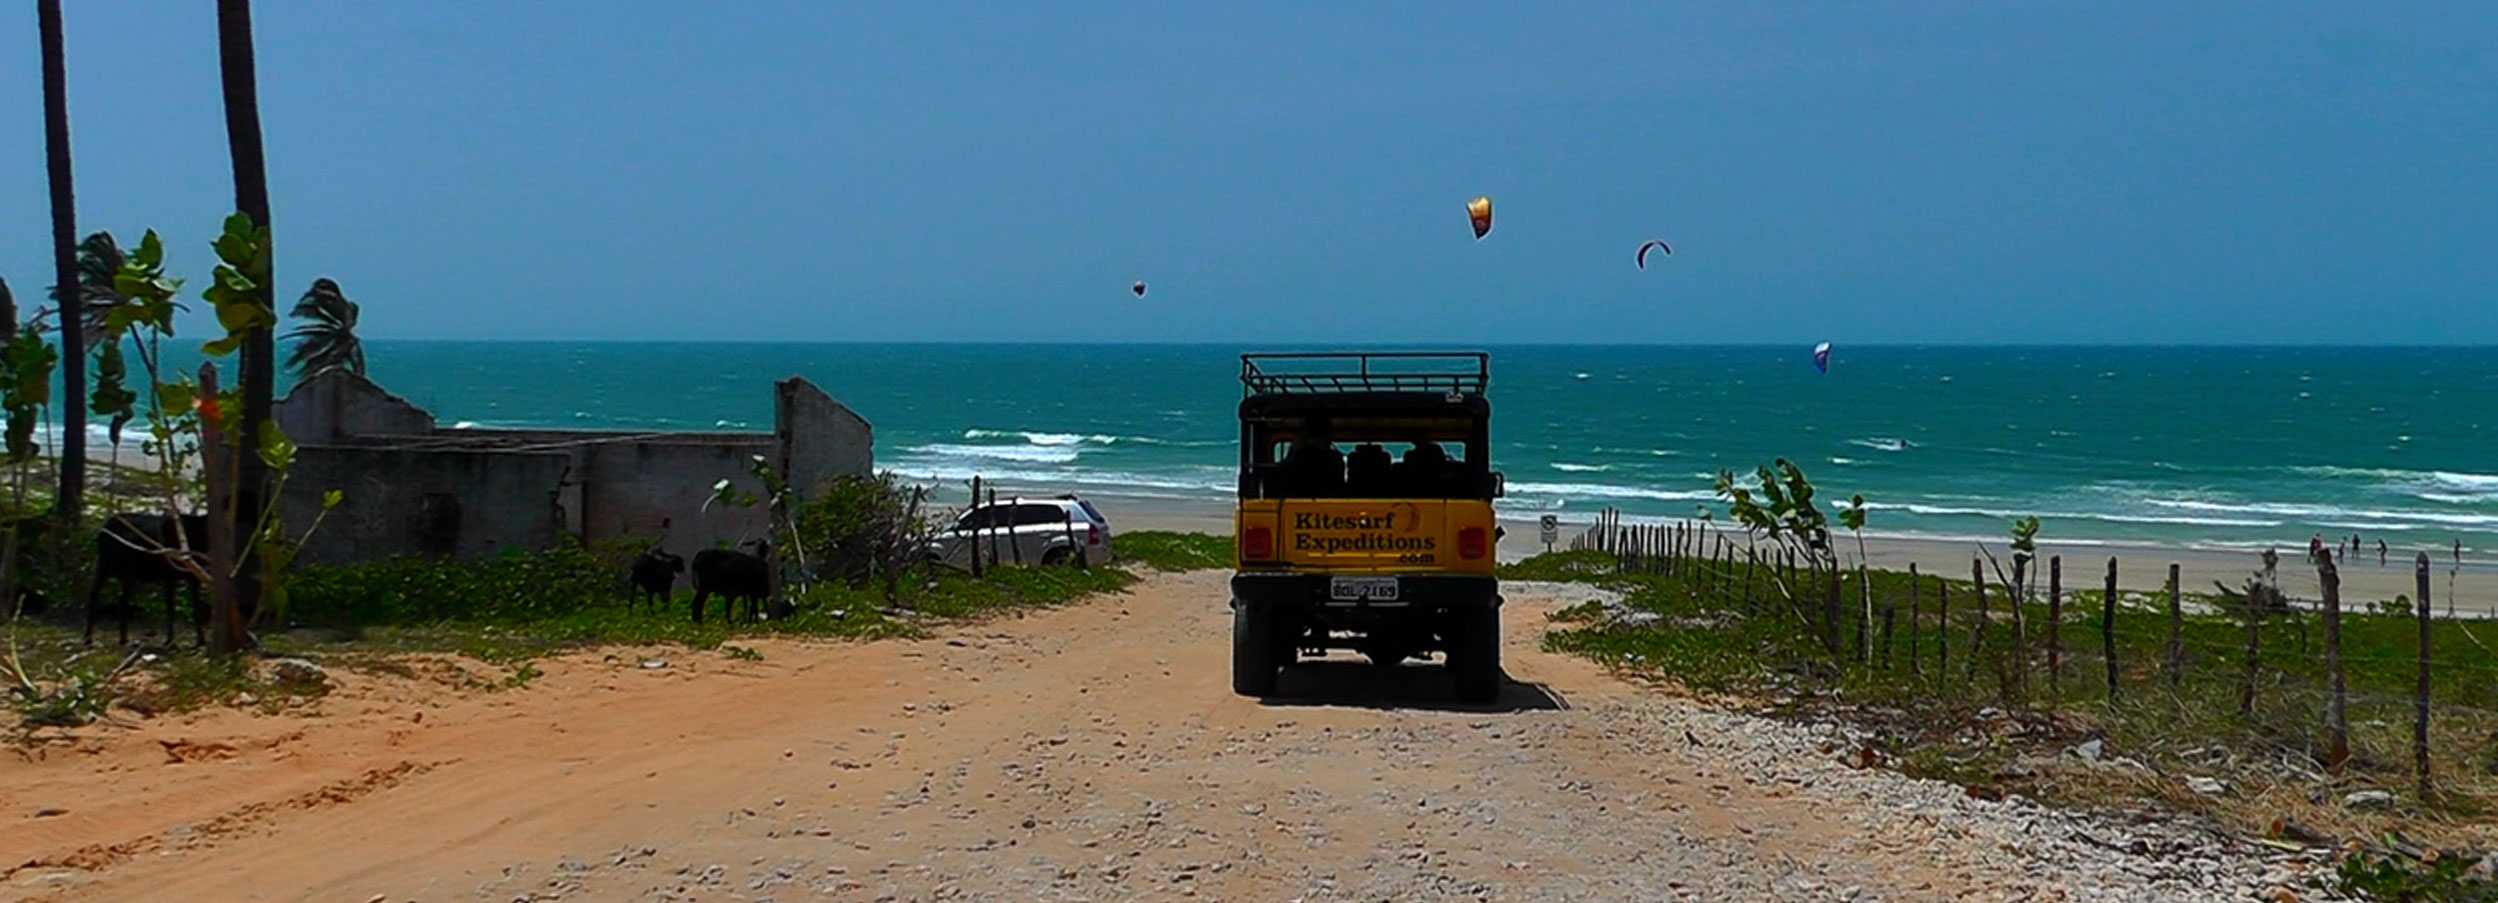 Kitesurf-Expeditions-downwinder-Brazil